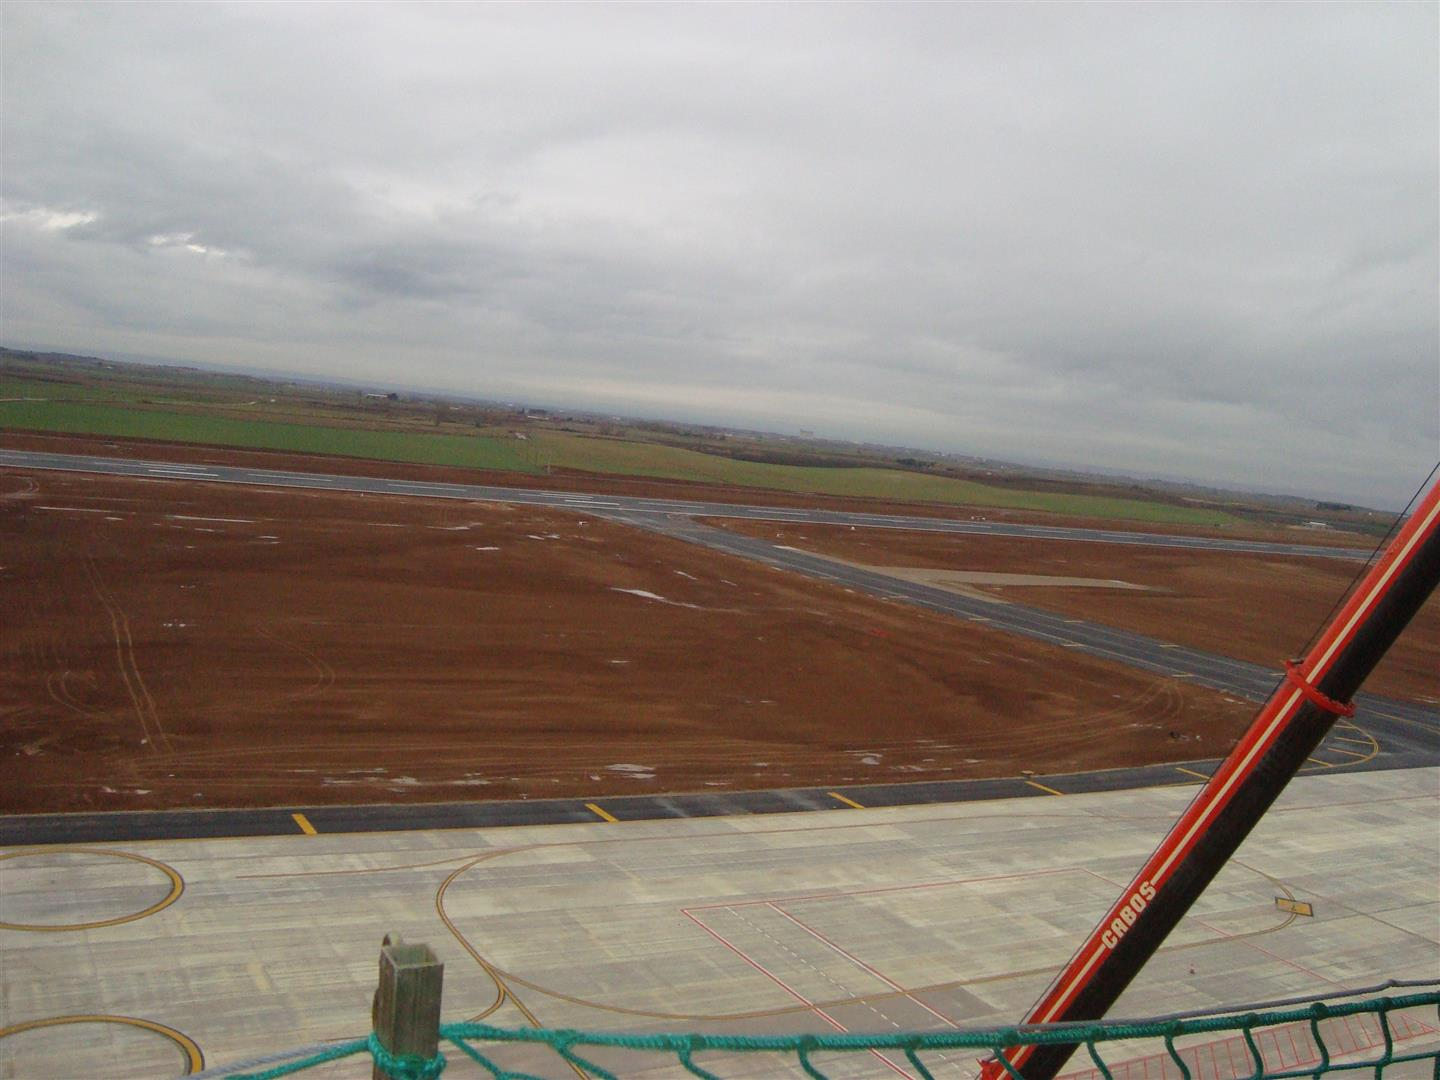 FOTOS AEROPORT 012